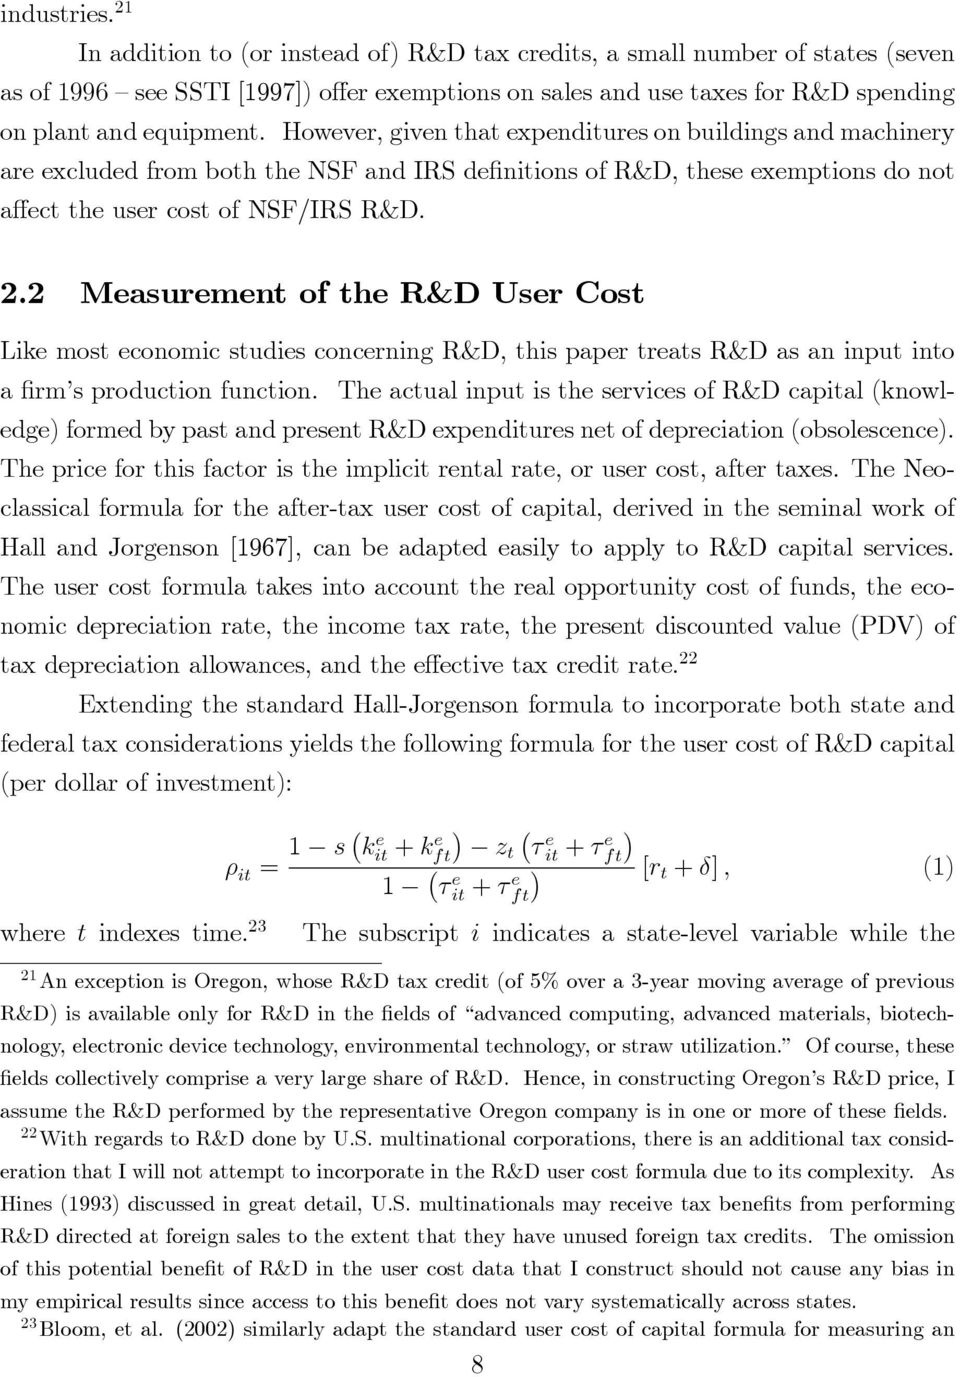 However, given that expenditures on buildings and machinery are excluded from both the NSF and IRS de nitions of R&D, these exemptions do not a ect the user cost of NSF/IRS R&D. 2.